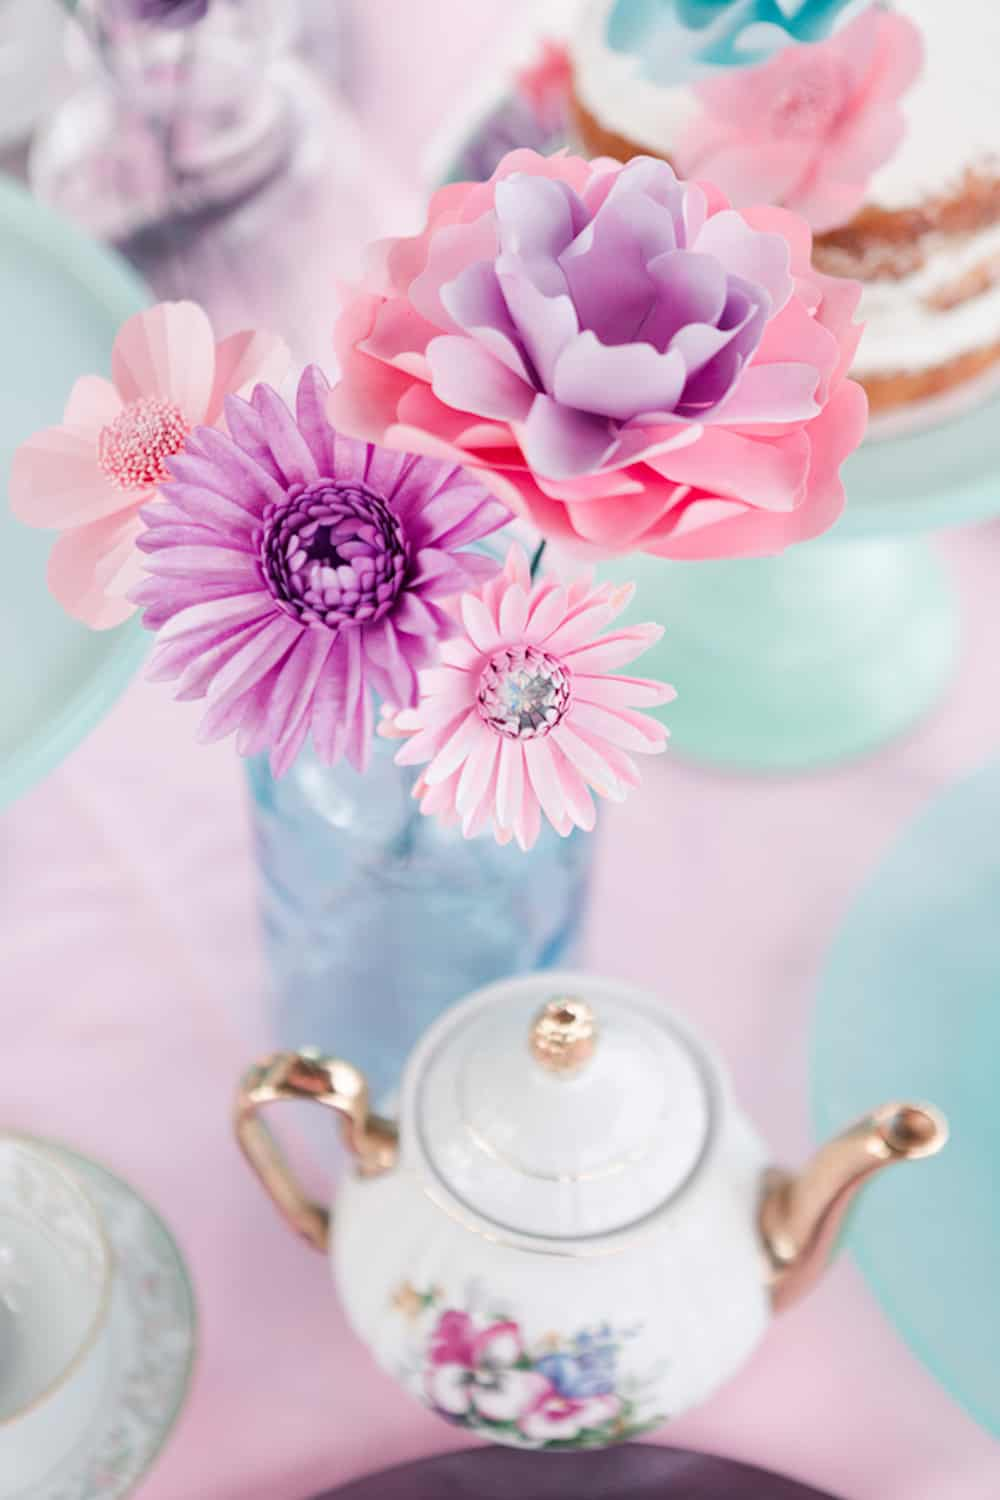 4B Wright_CWrightPhotography_MothersDayHighTeaStyledShootbyCWrightPhotography21_low